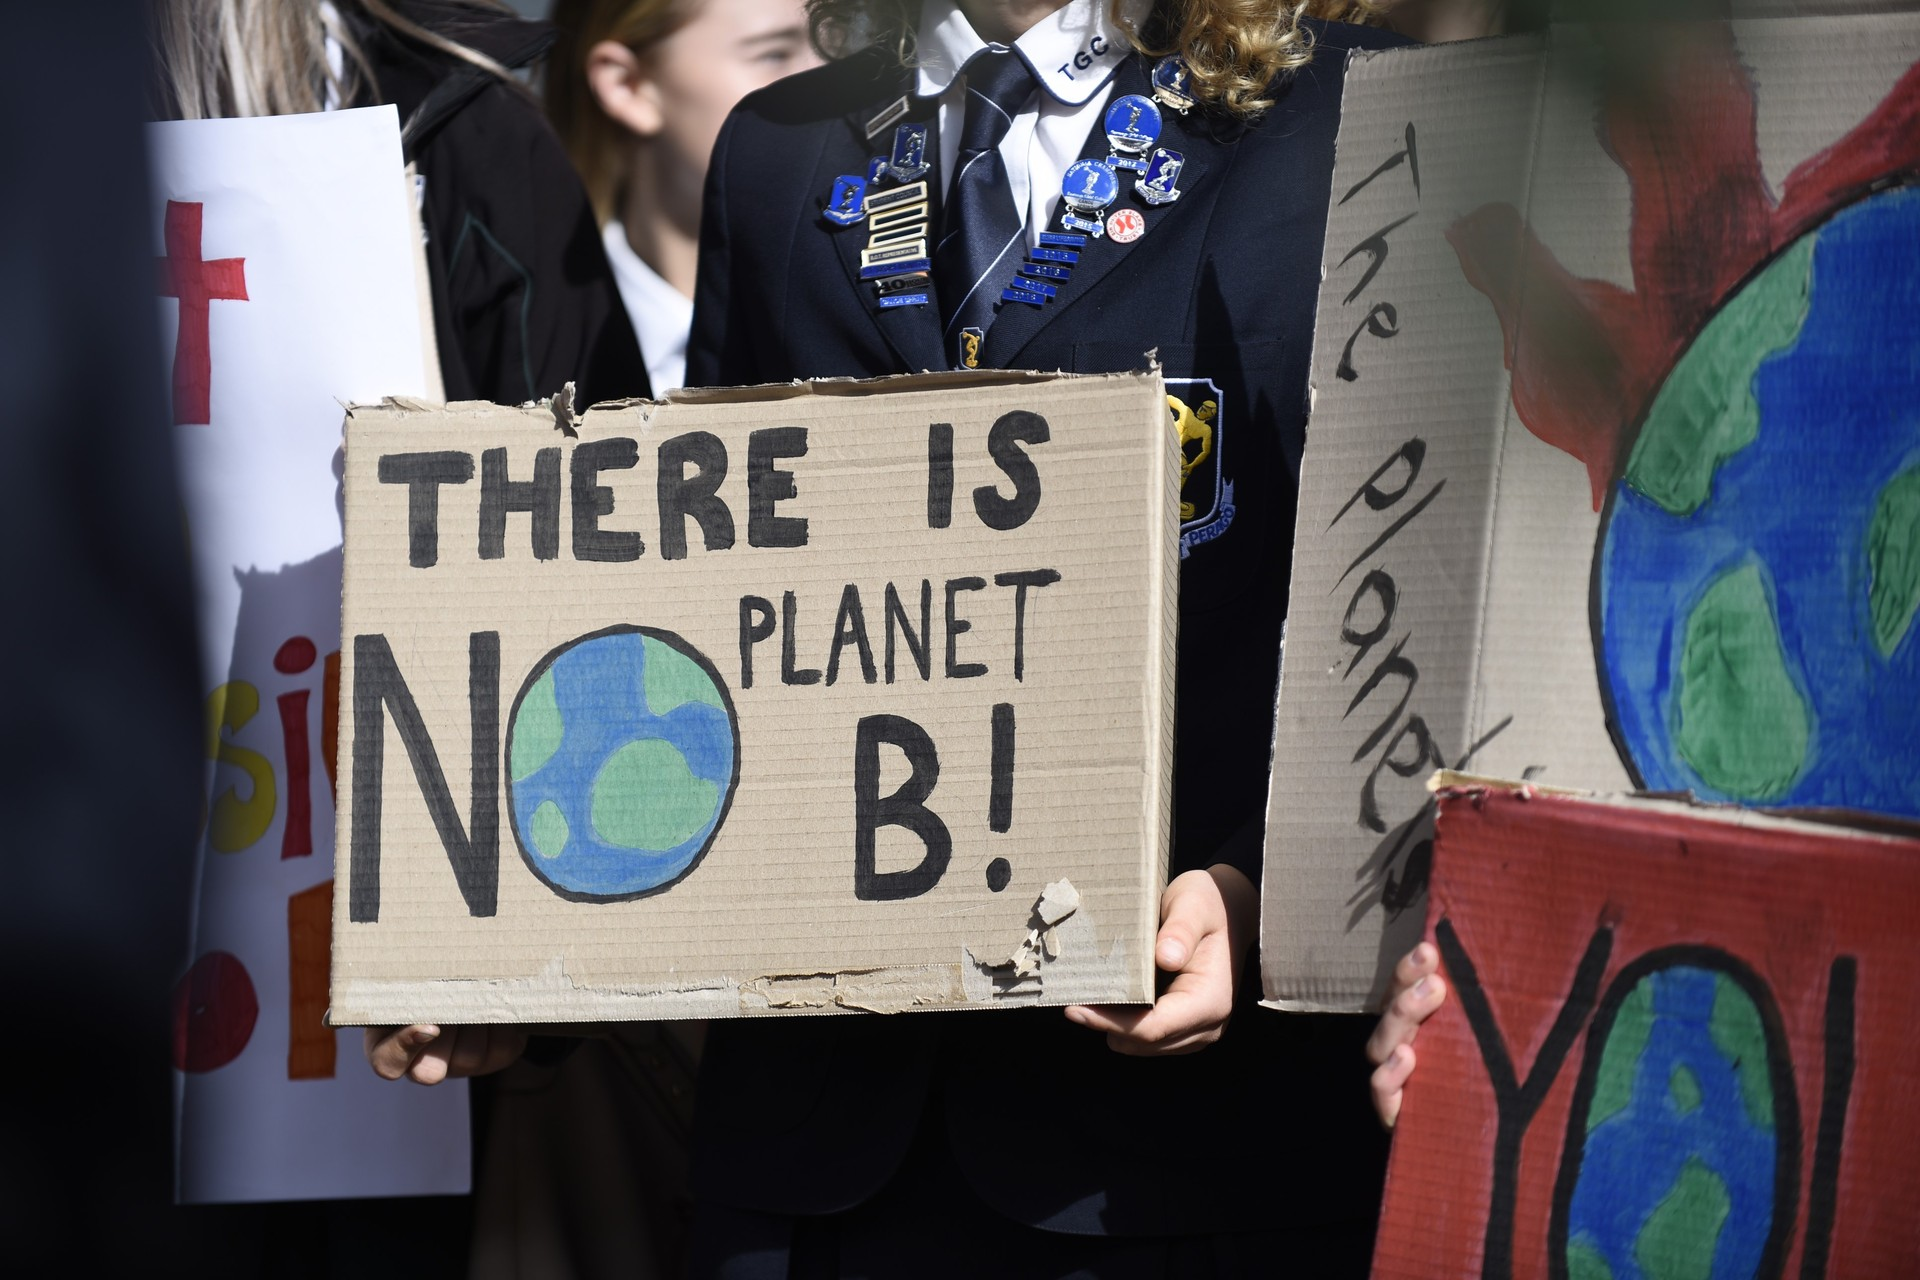 Herald podcast: Why we can't risk normalising climate change